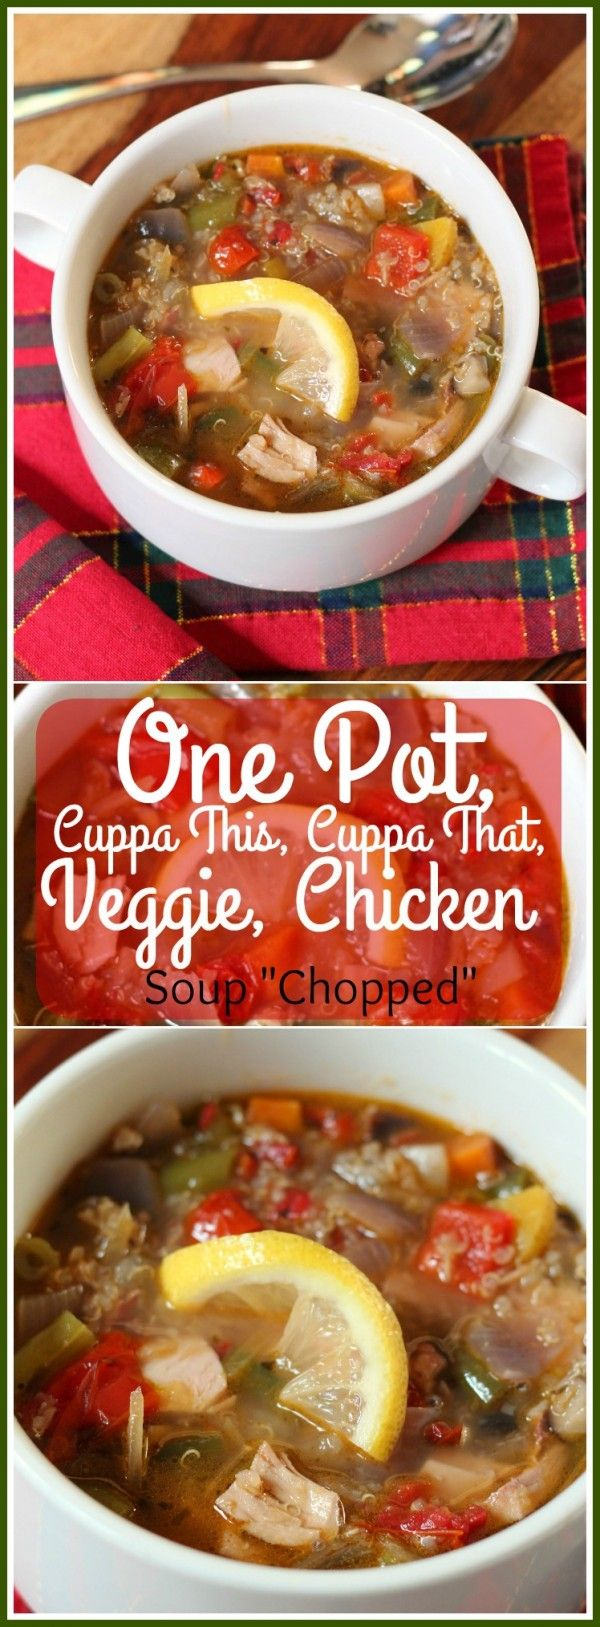 When the weather outside is frightful...Make soup! On Pot, Cuppa this, Cuppe that, Veggie, Chicken Soup Chopped The Kitchen Chopper